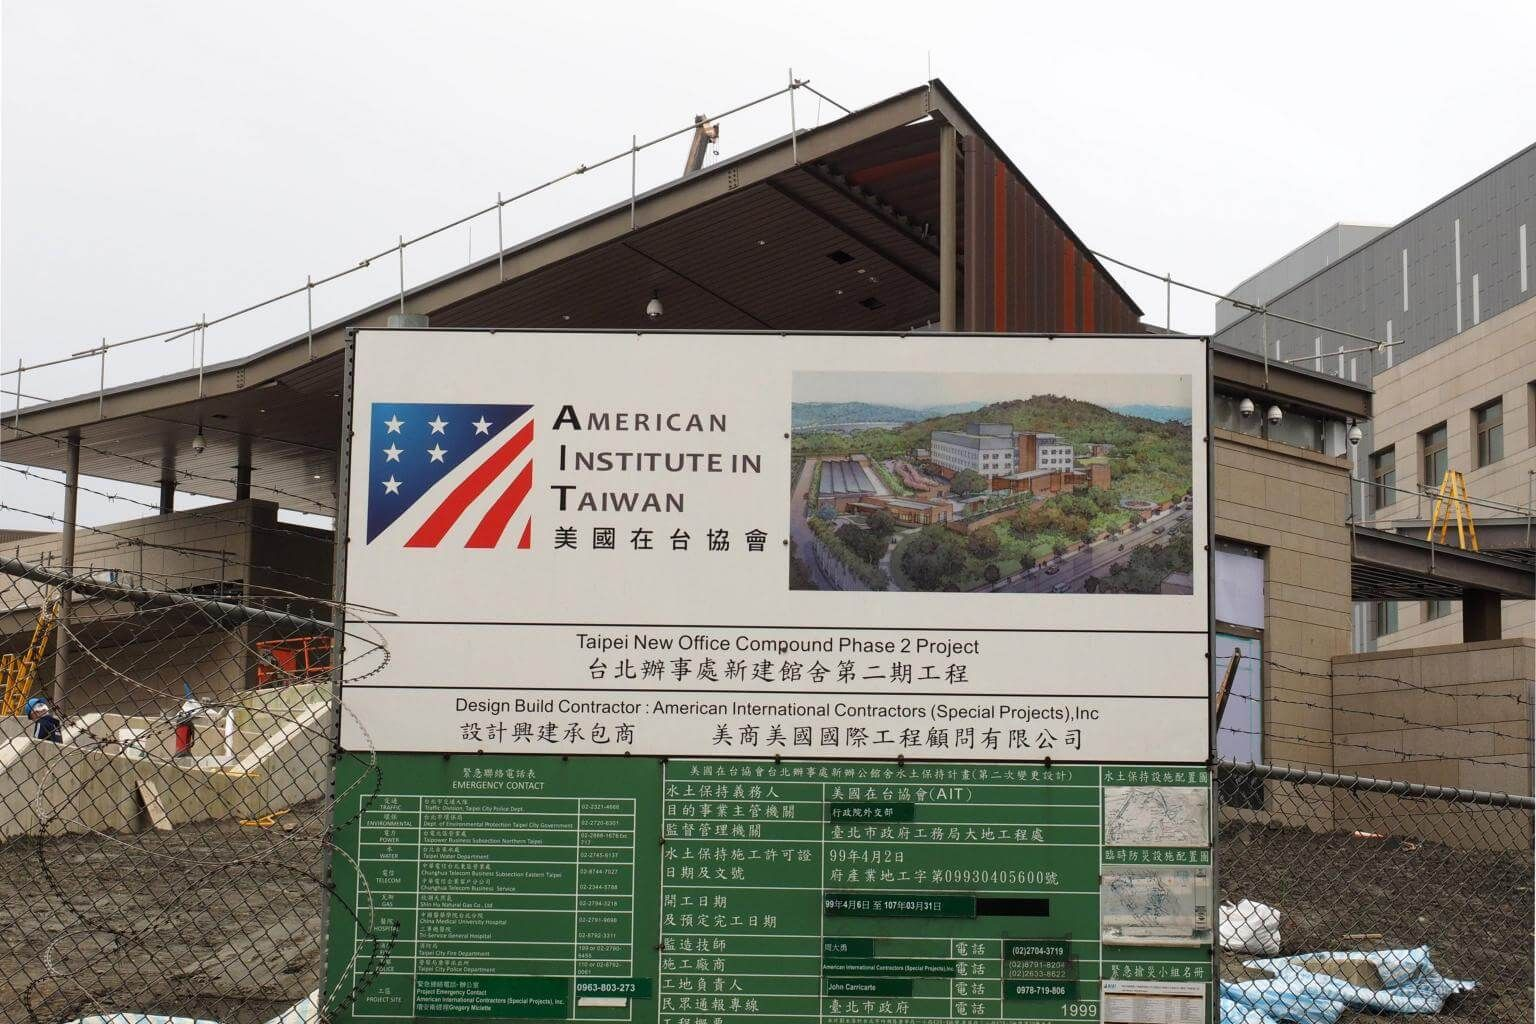 U.S.  upsets China with new de facto embassy in Taiwan